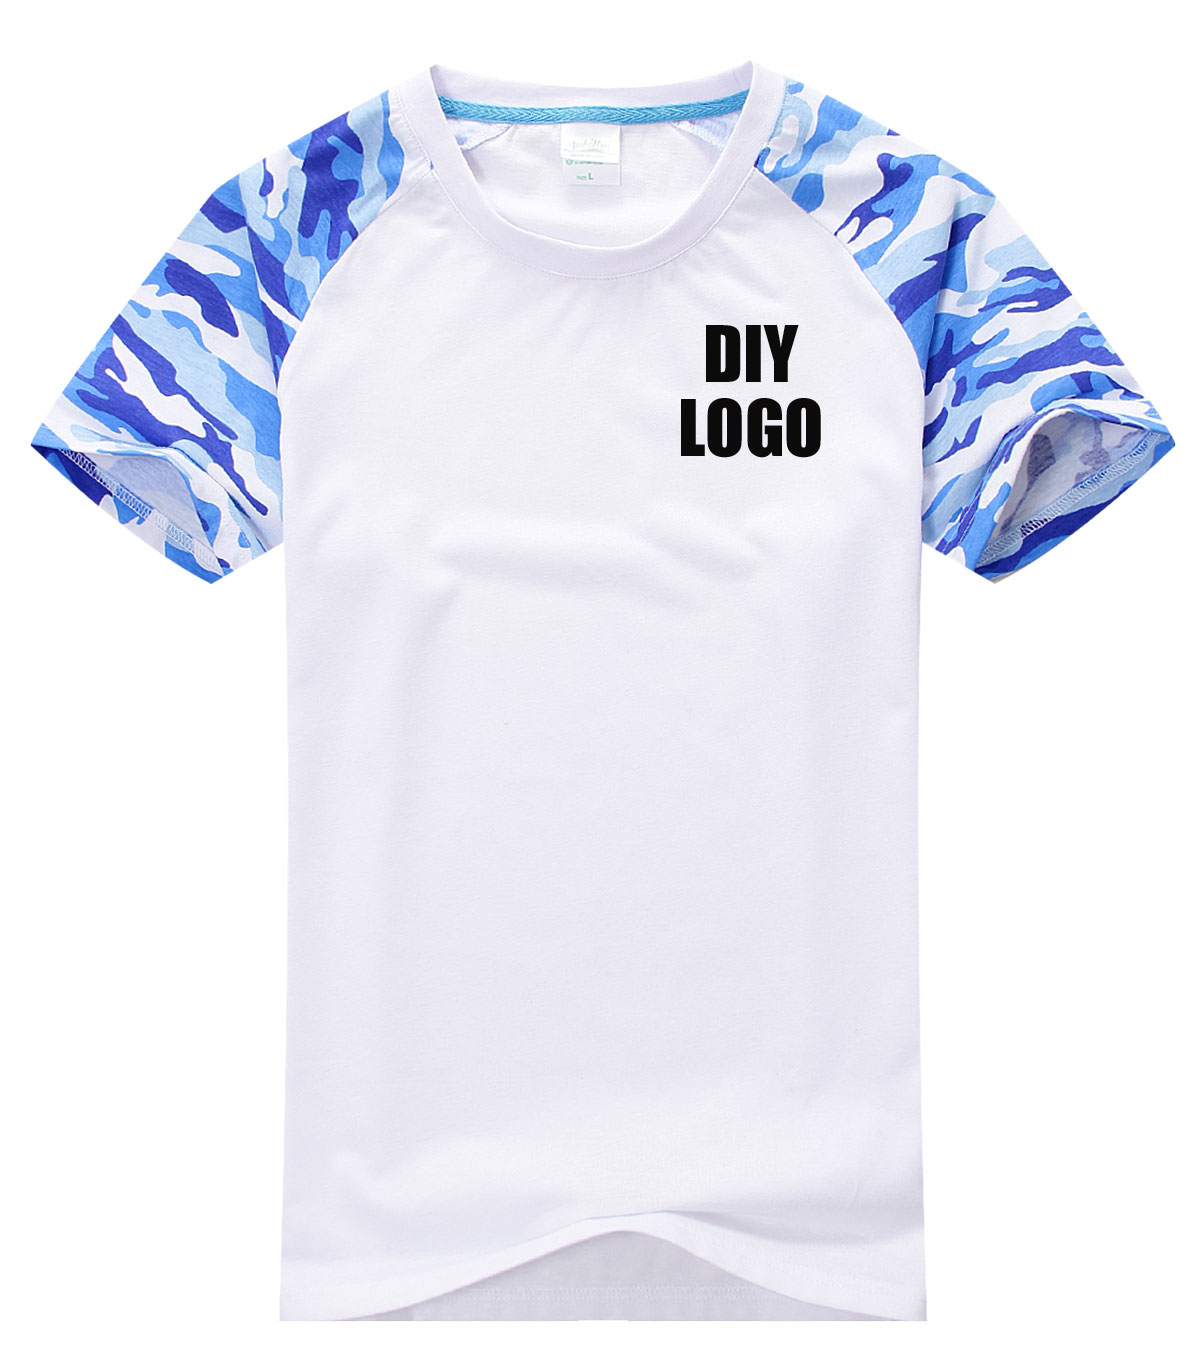 Create own logo on camouflage t shirt cotton battle fatigues short sleeve logo printing embriodered 2015 new arrived casual teeОдежда и ак�е��уары<br><br><br>Aliexpress